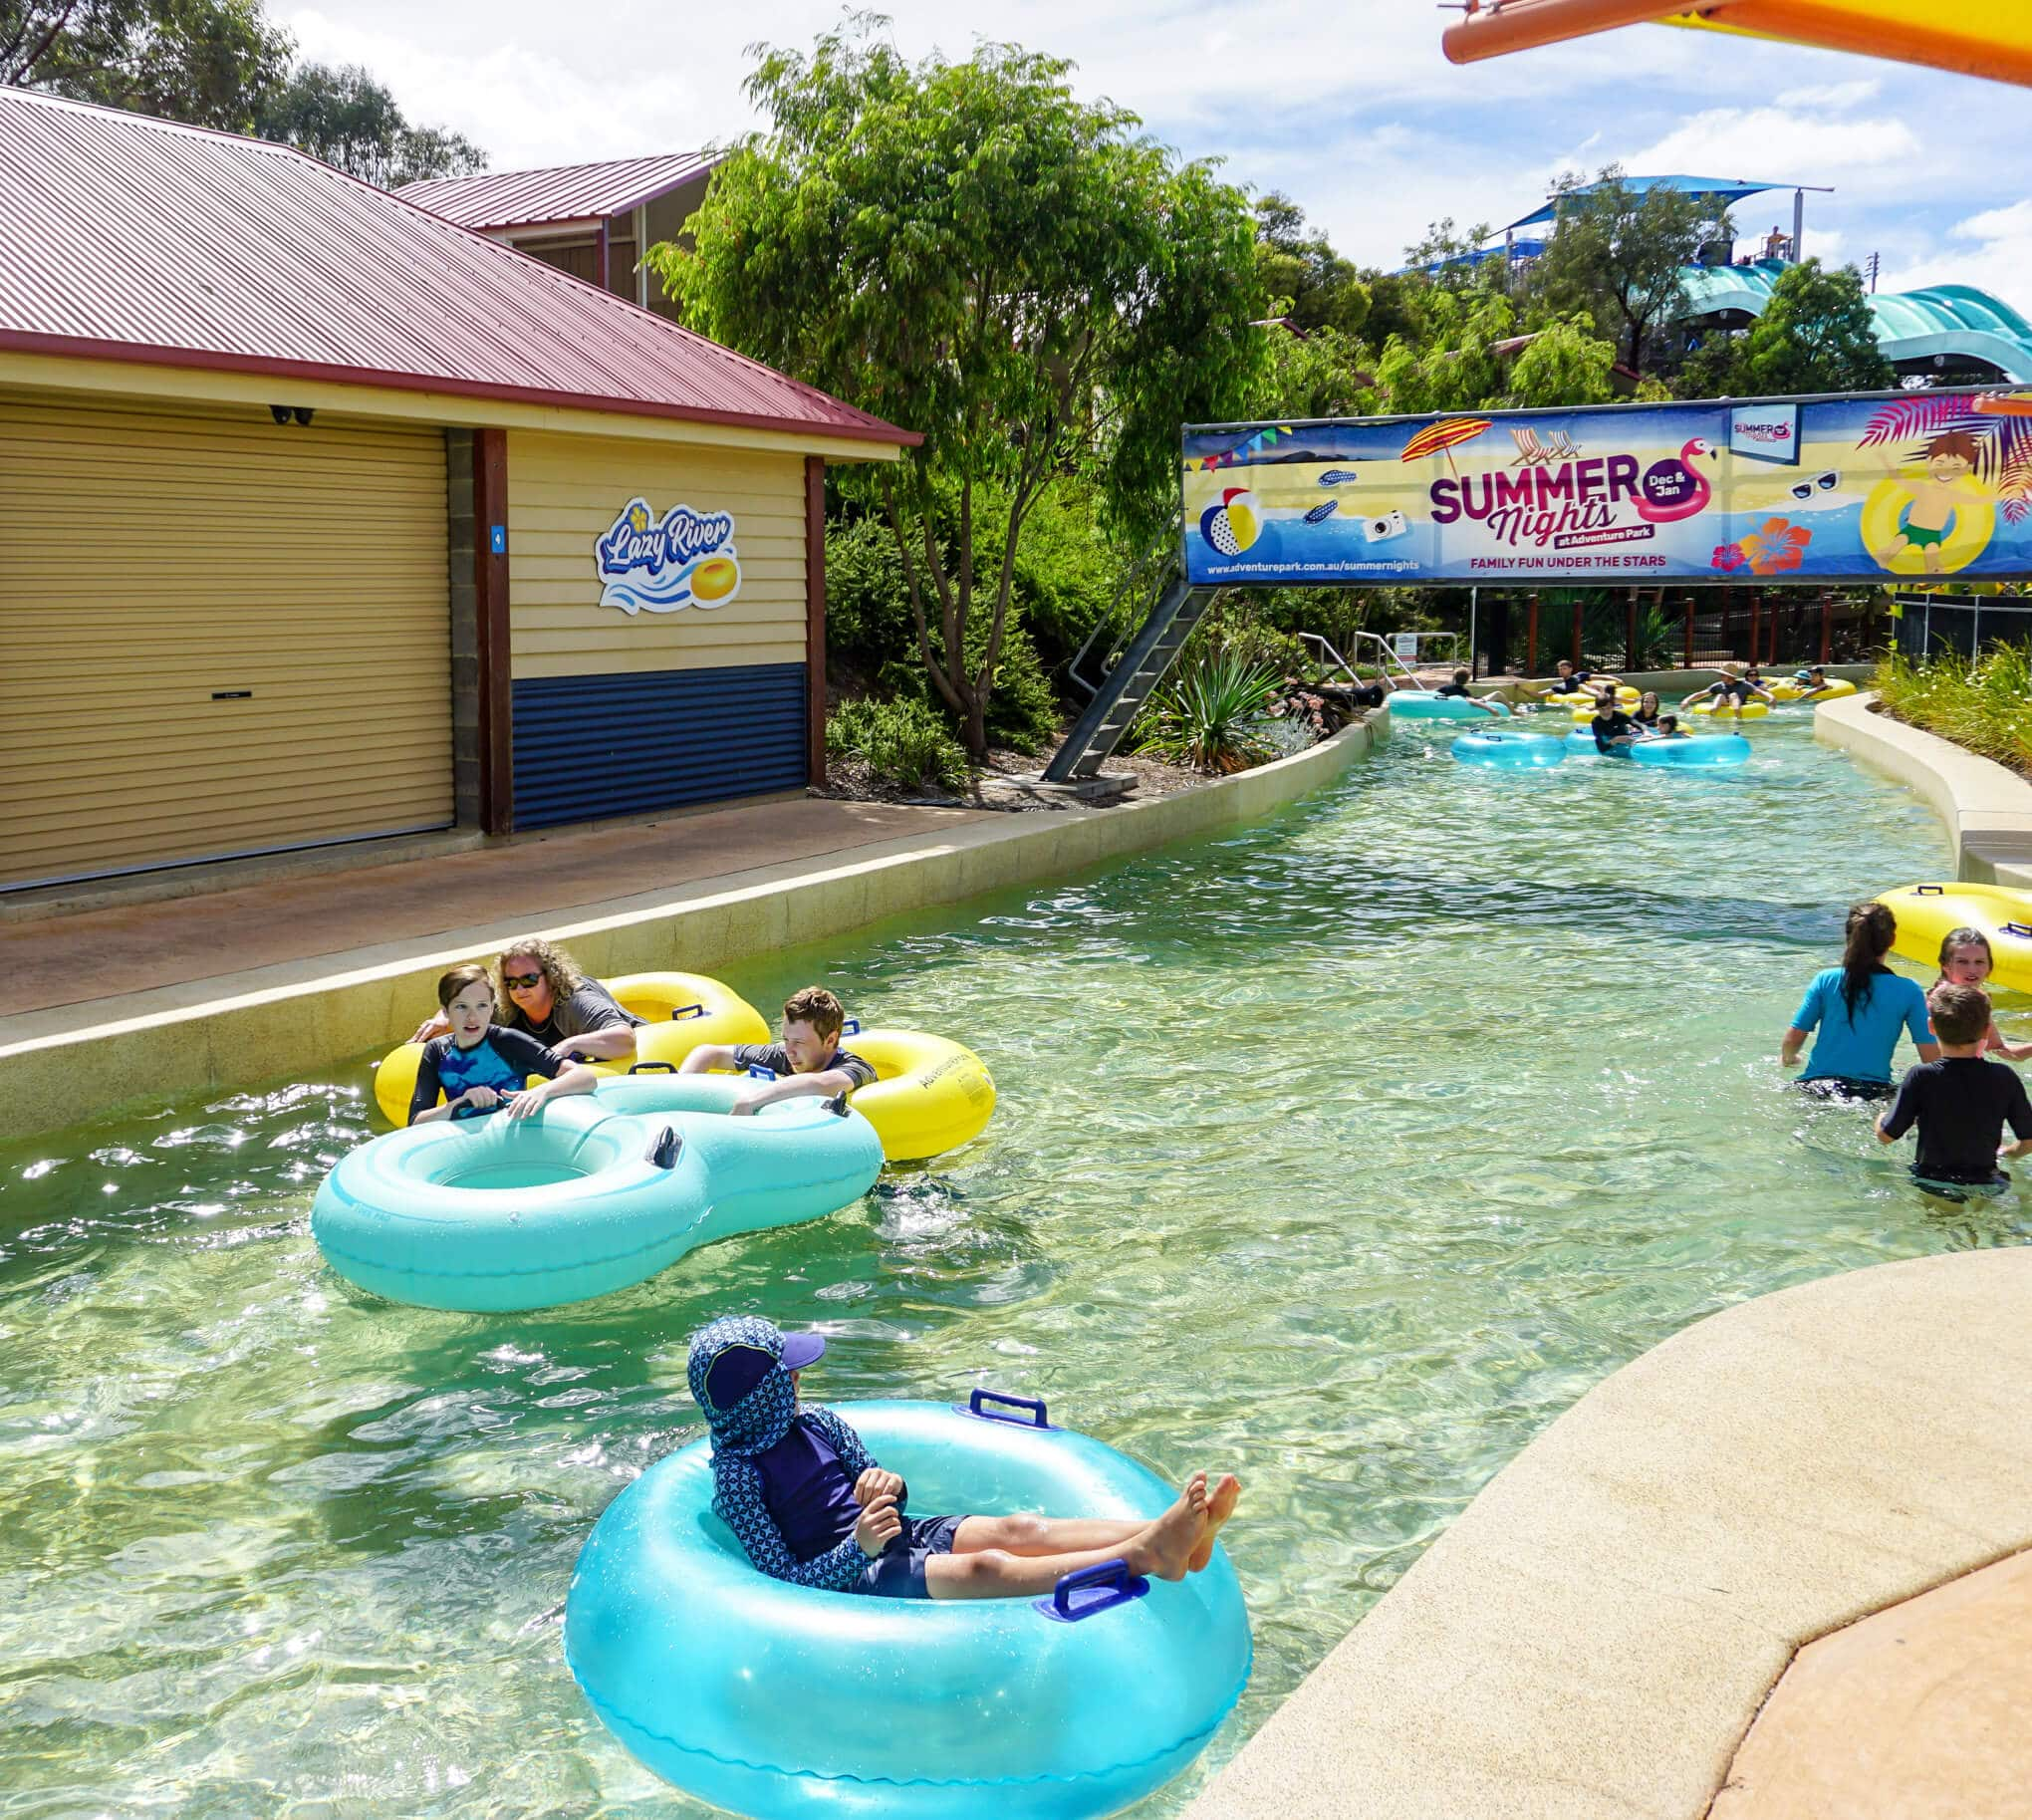 8 Tips For Visiting Adventure Park Geelong Review Tot Hot Or Not